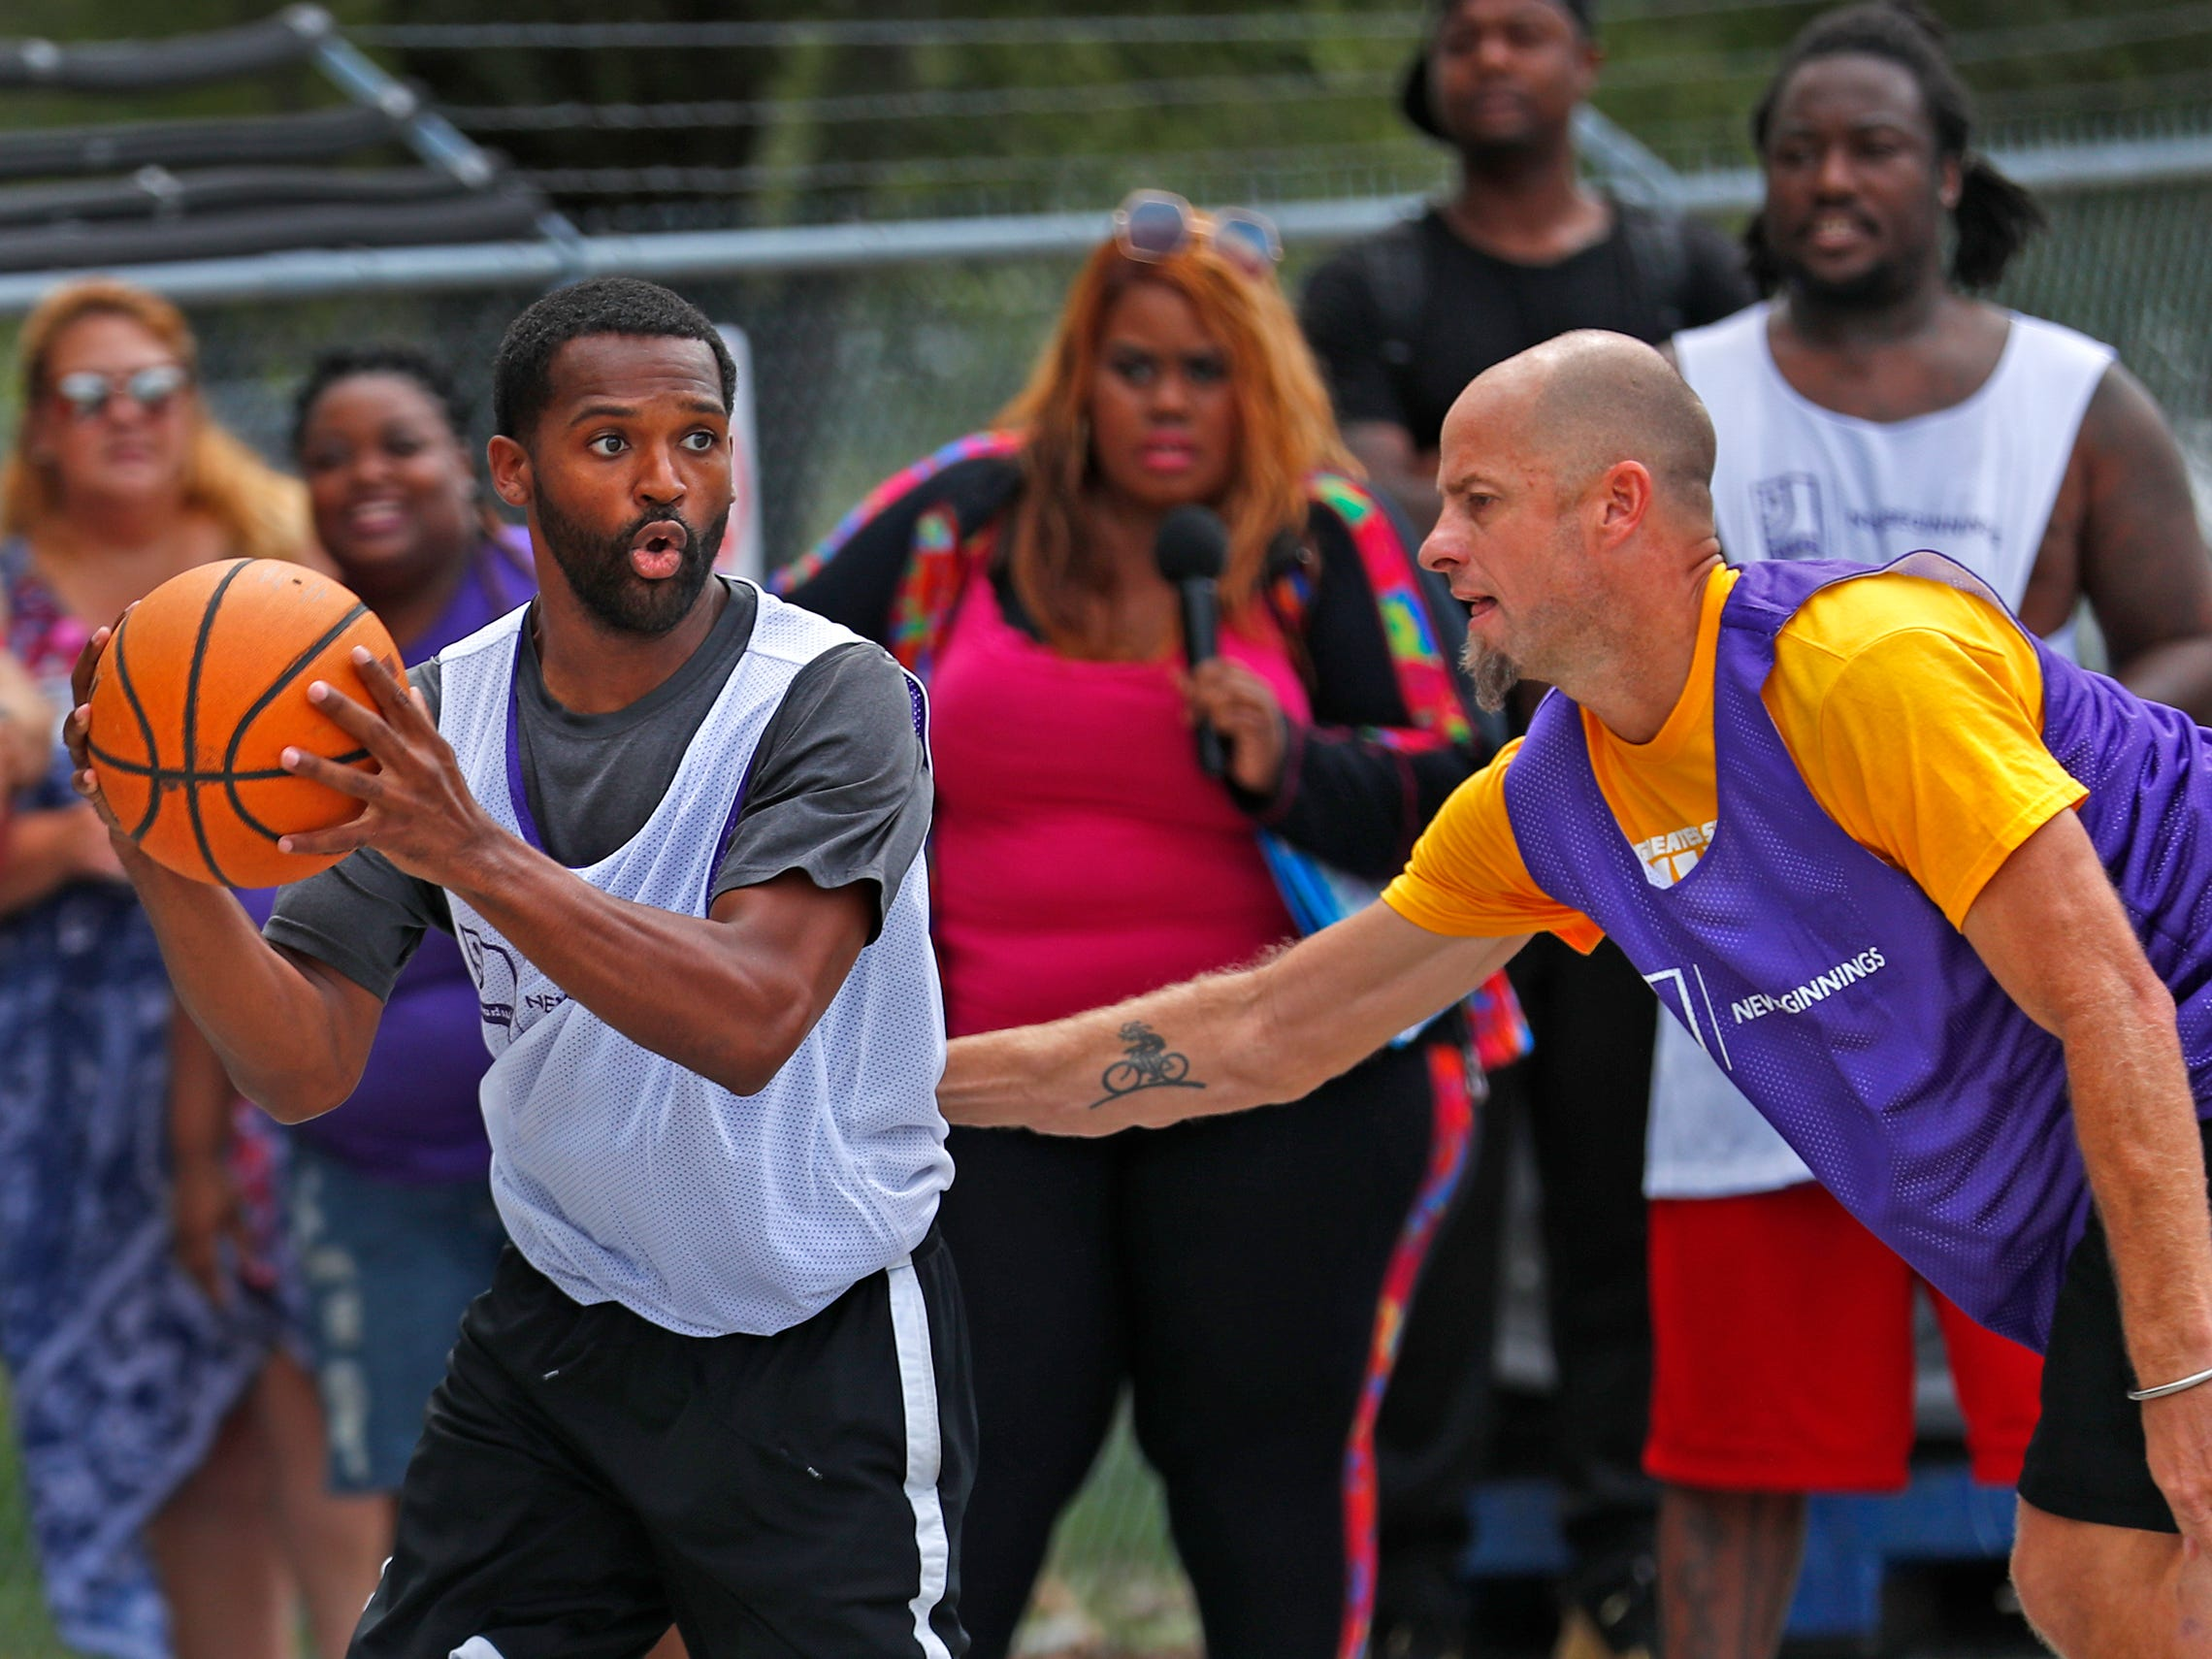 Taylor Hopkins, with Goodwill Guides, moves past Roger Hasper, with Goodwill, during a basketball game at Goodwill Commercial Services, Wednesday, Sept. 19, 2018.  Goodwill Industries of Central Indiana's New Beginnings hosted the 3-on-3 basketball tournament bringing together participants in New Beginnings, a six-month re-entry program for ex-offenders that works on job and life skills, with representatives from Goodwill, IMPD, the Mayor's office, Marion County Probation department and other services.  The goal is to celebrate the New Beginnings program while breaking down re-entry barriers through basketball.